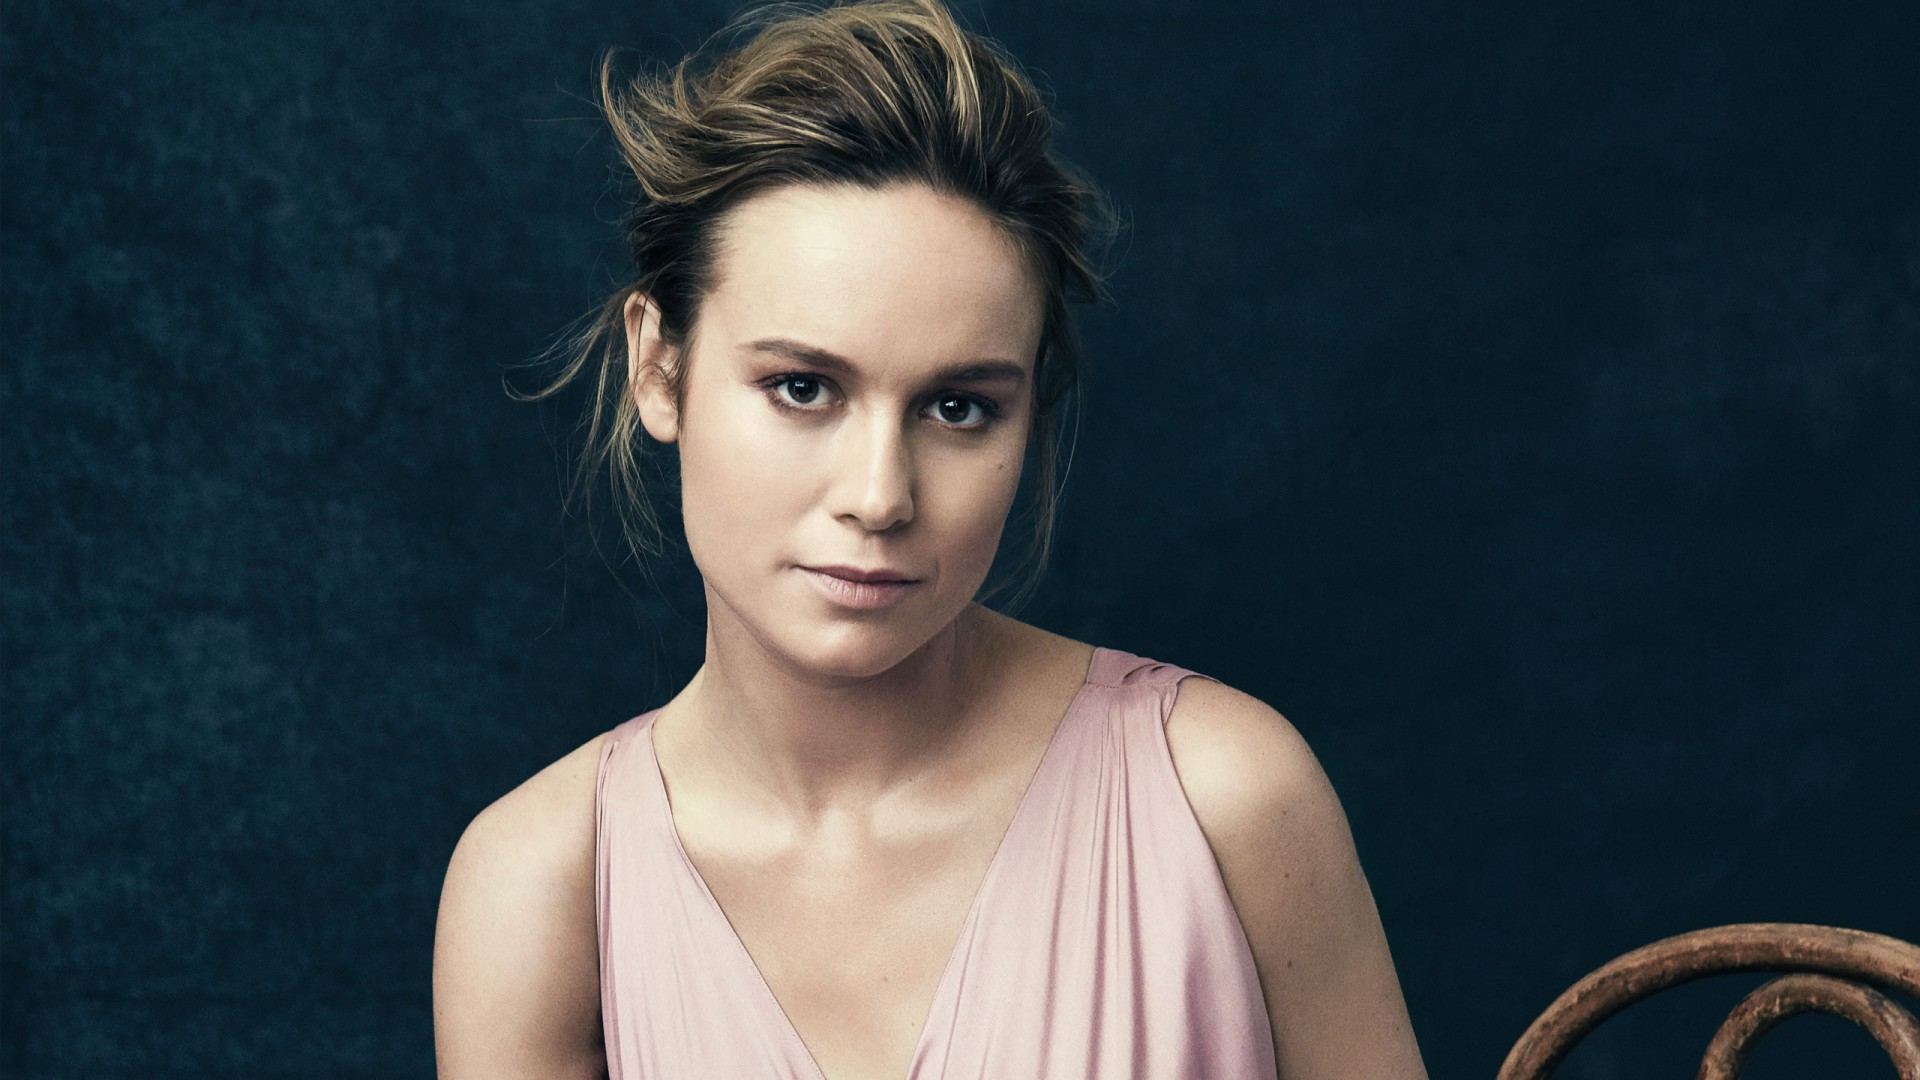 3d Wallpaper Iphone 6s Brie Larson Hd Wallpapers Hd Wallpapers Id 22809